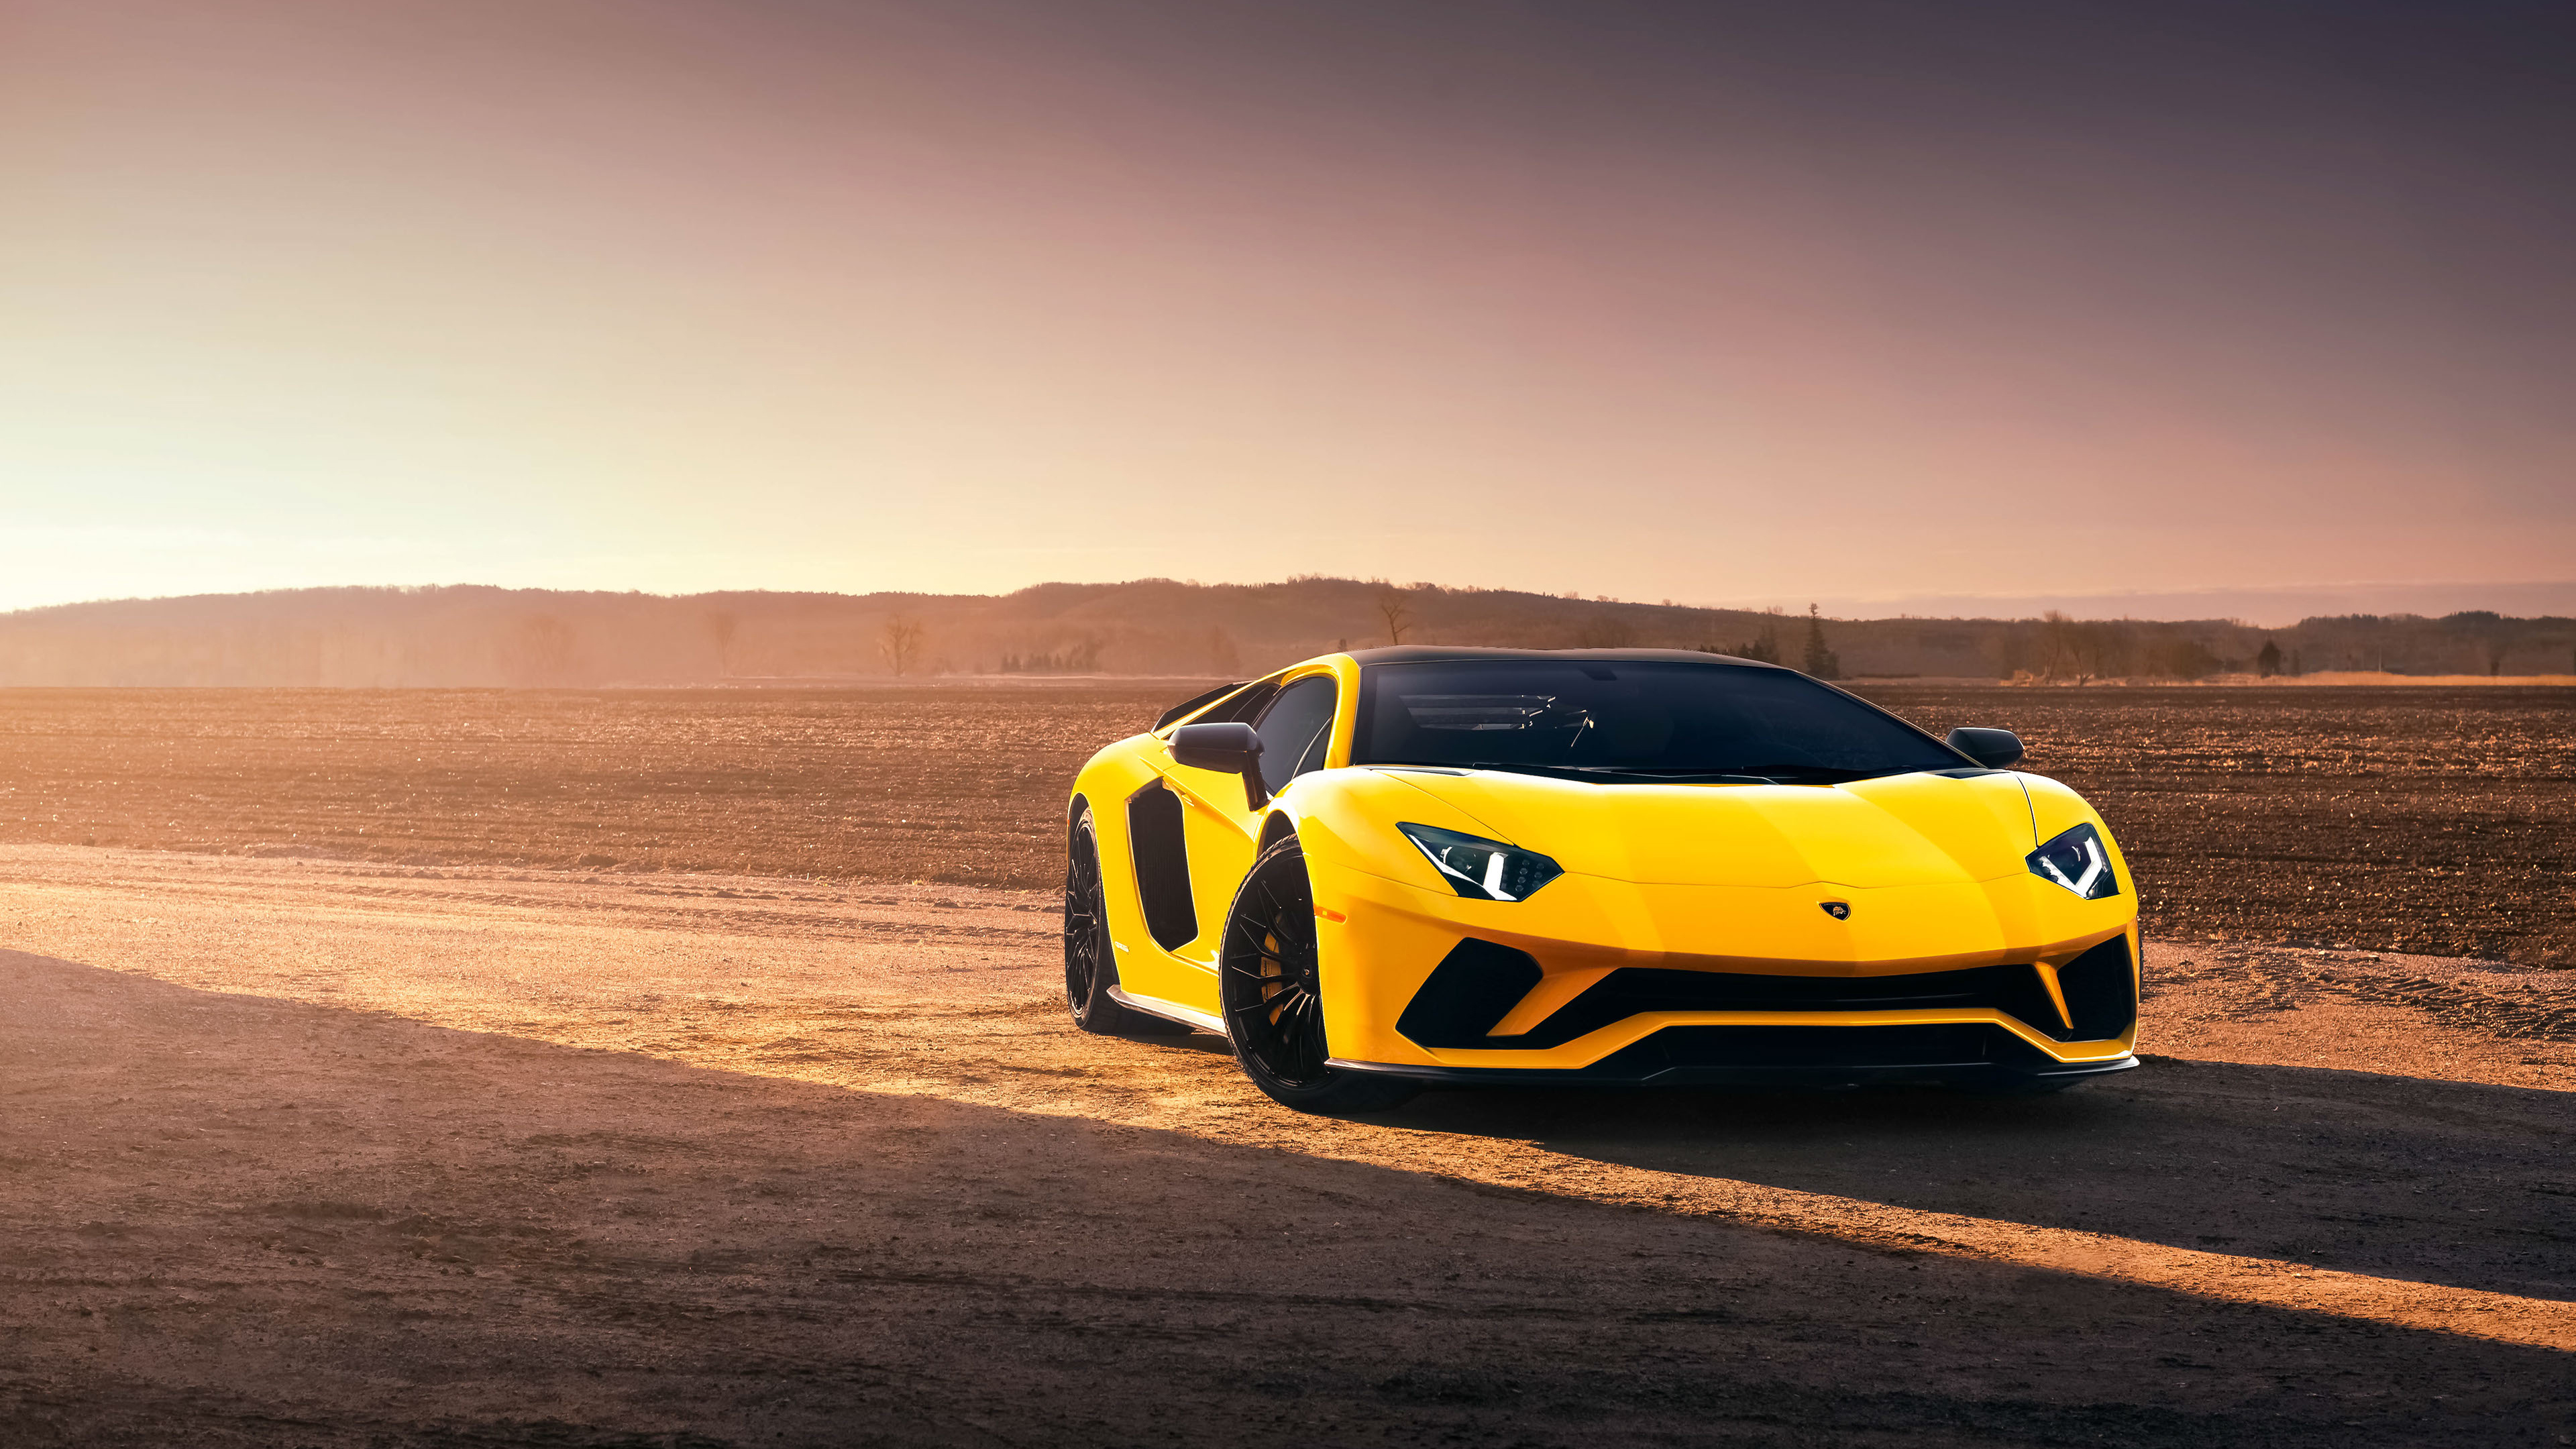 Lamborghini Aventador S 4k Ultra HD Wallpaper Background Image 3840x2160